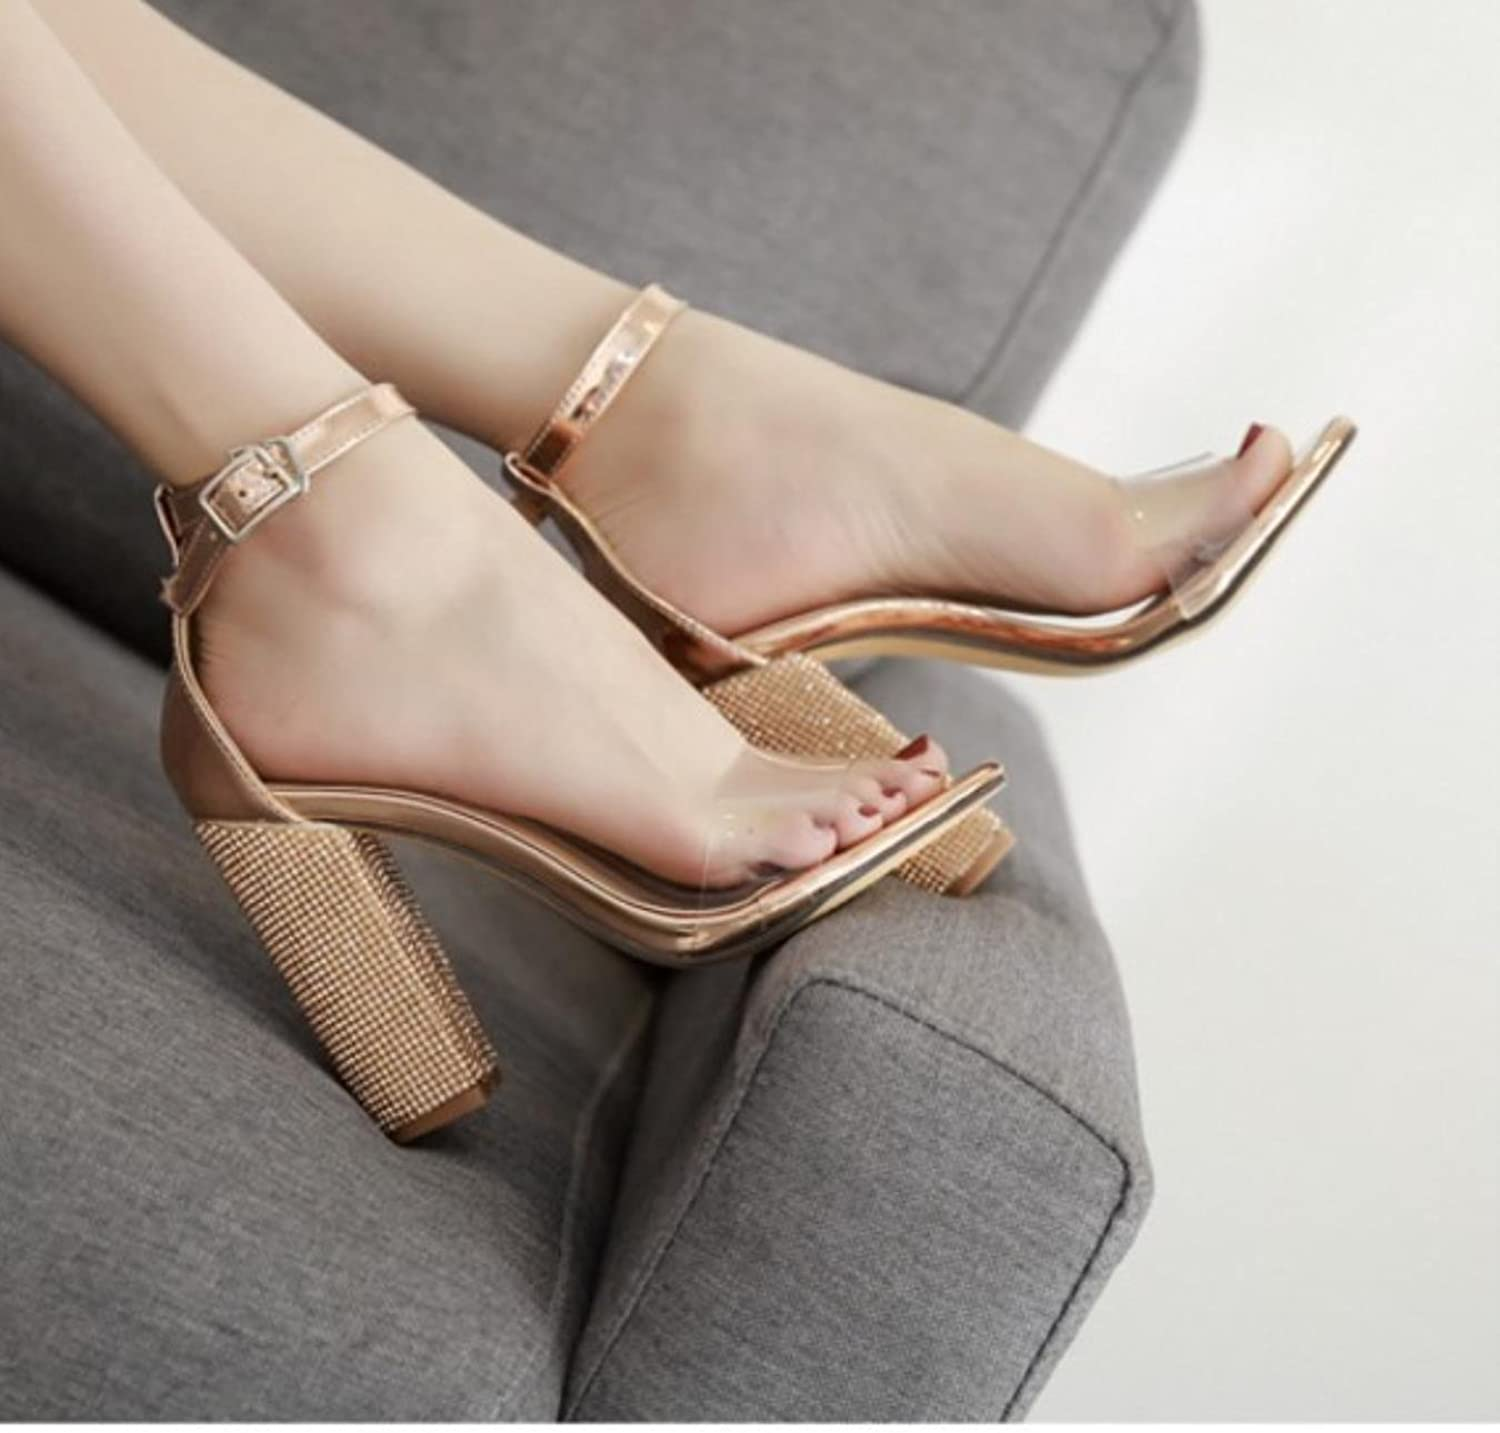 Women Pumps Clear Transparent Sandals Ankle Strap Crystal Rhinestone High Heel Thick Chaussure Femme Talon Party